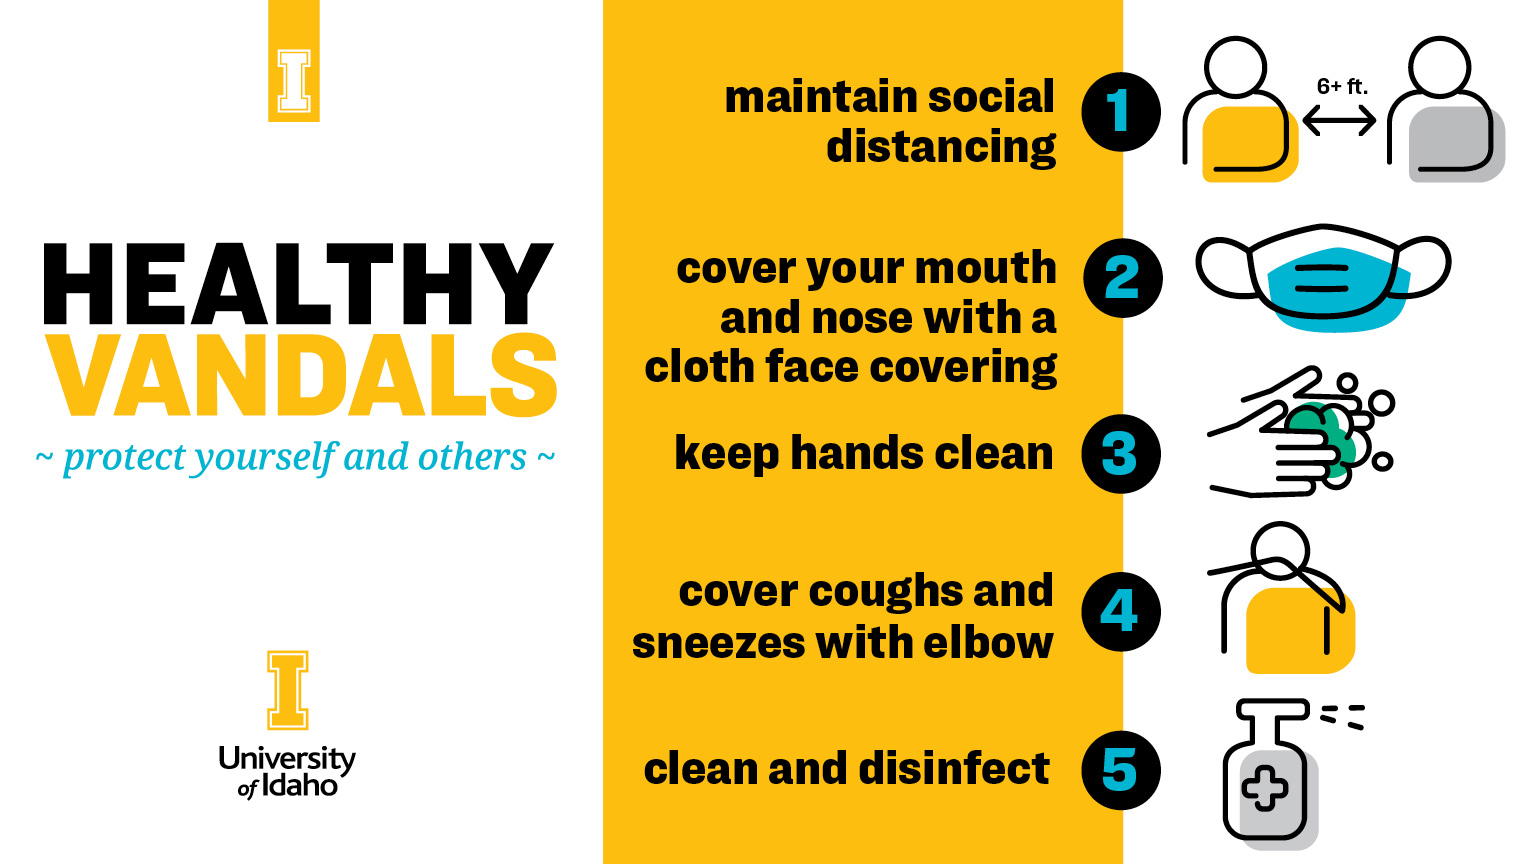 Healthy Vandals protect yourself and others: maintaining social distance, cover moutn and nose with a cloth face covering, keep hands clean, cover coughs and sneezes with elbow, clean and disinfect